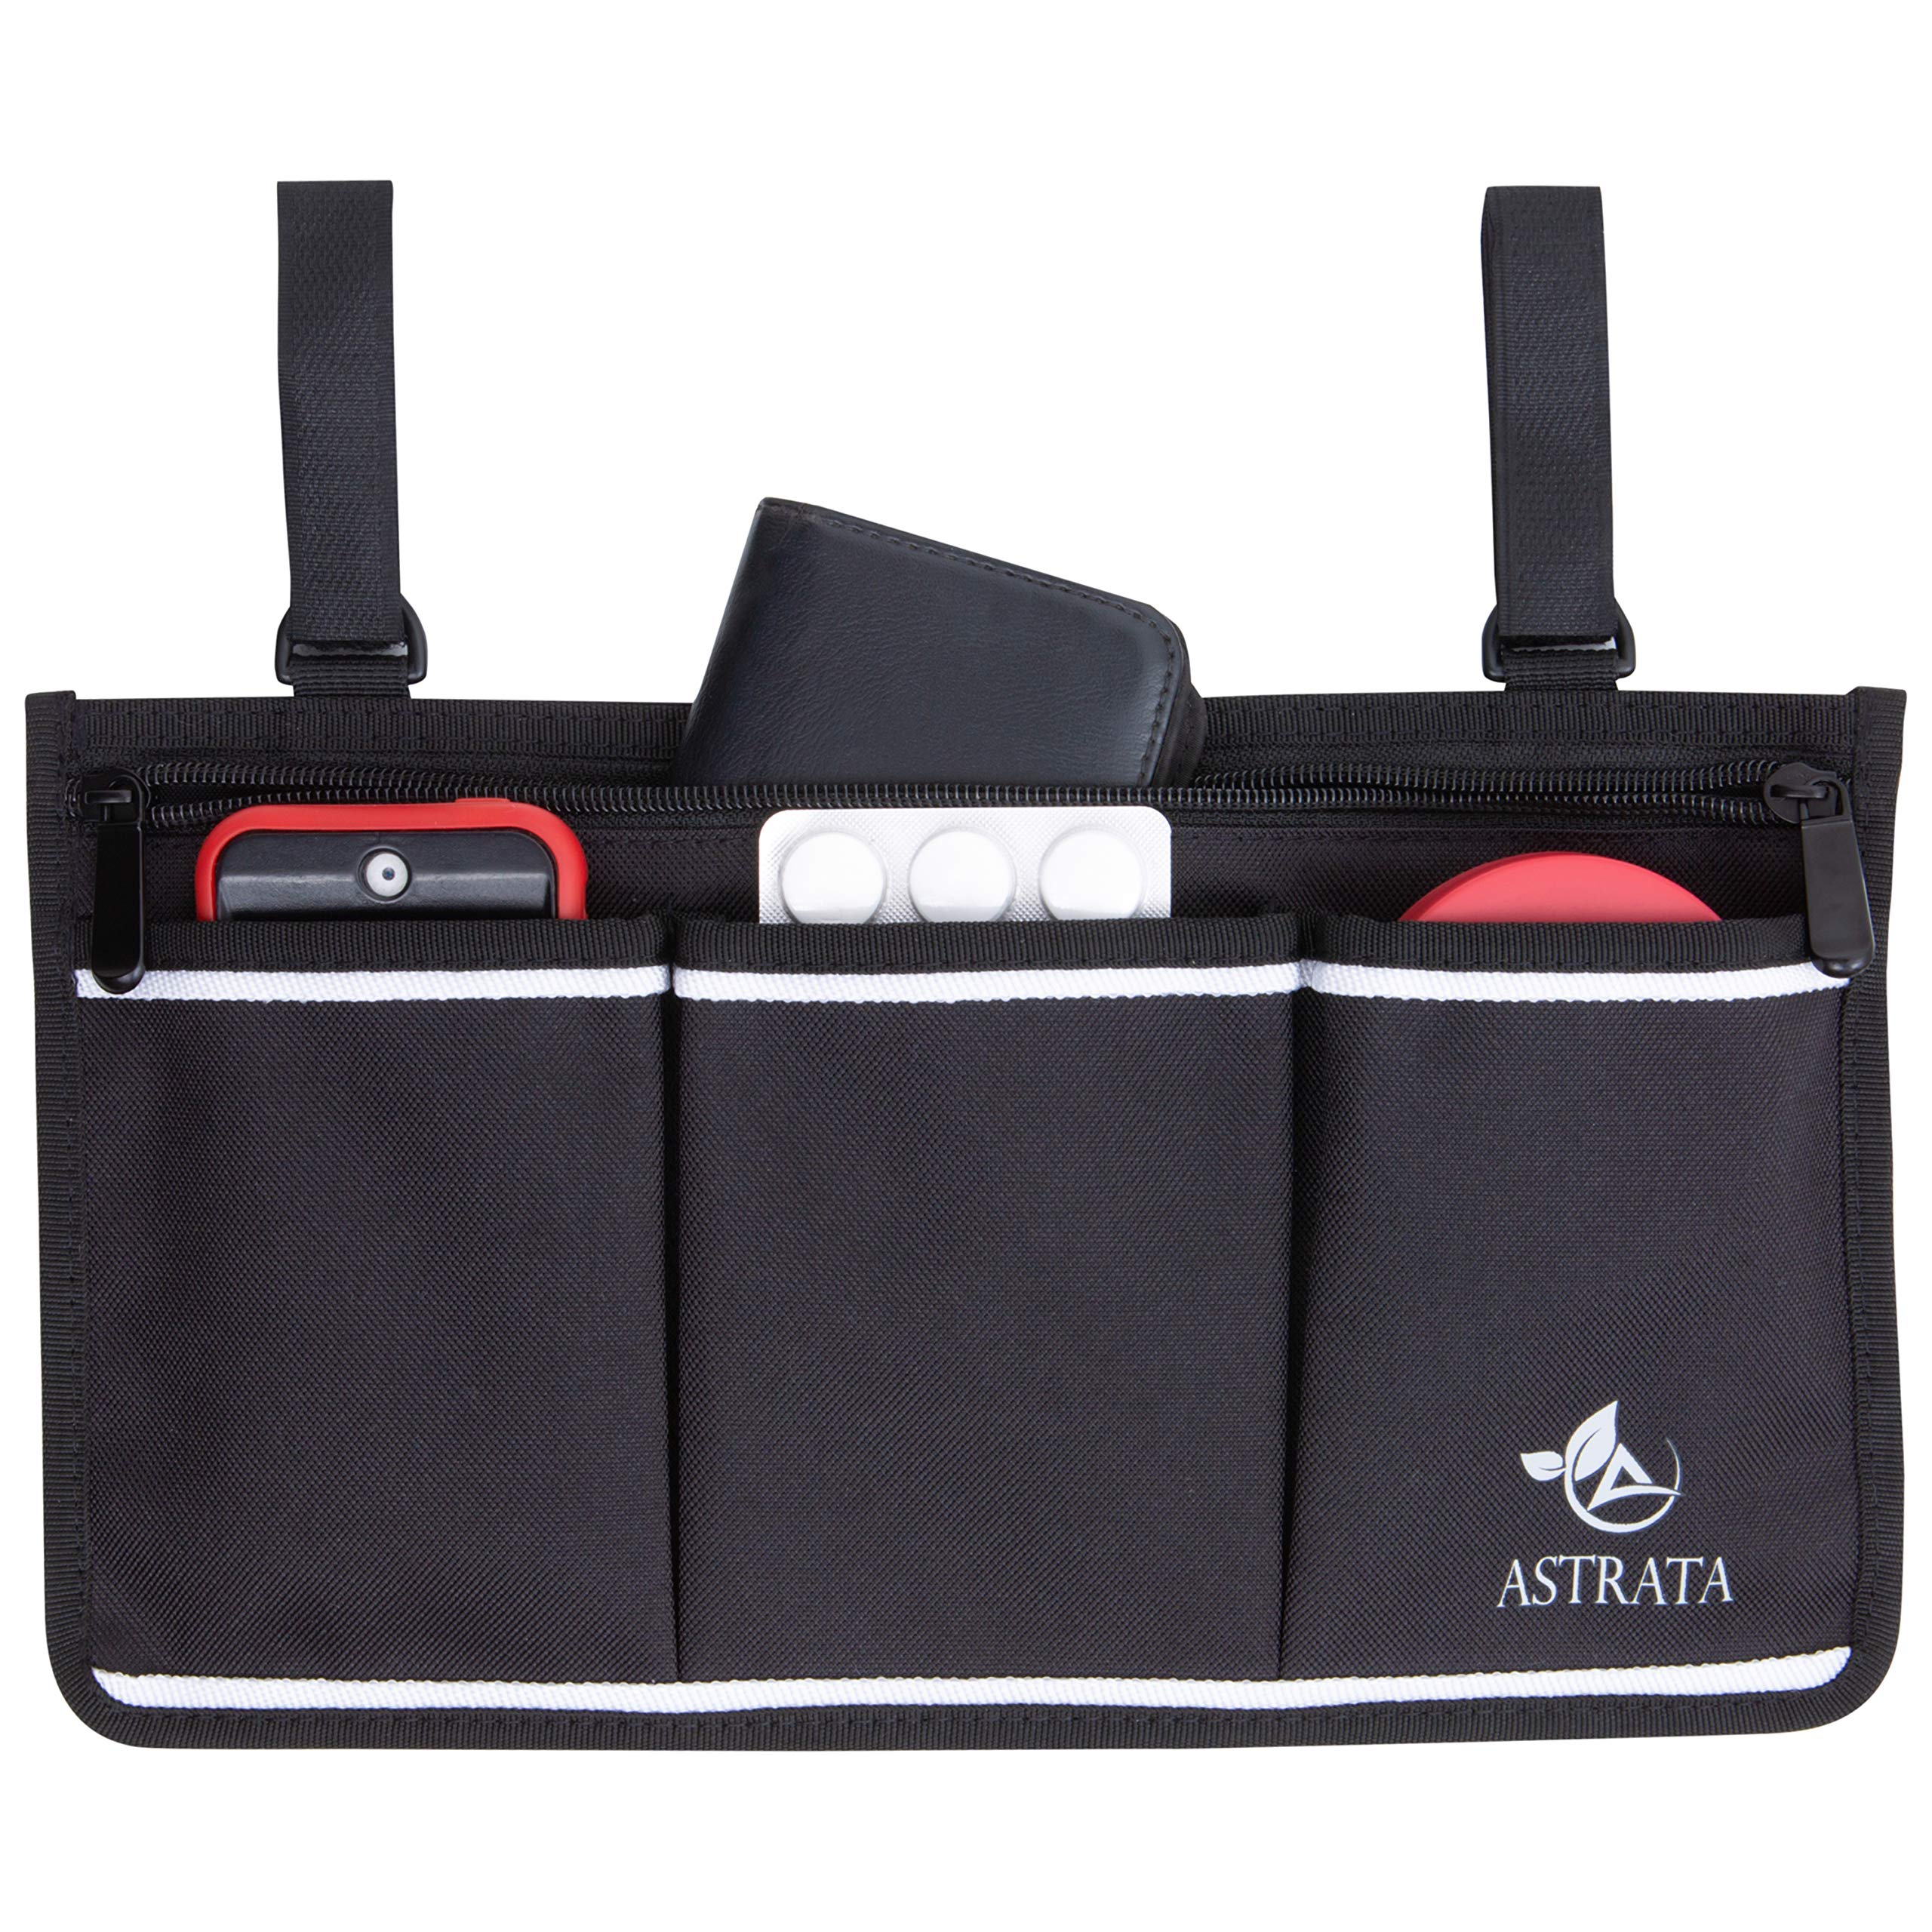 Wheelchair Side Bag - Arm Rest Pouch - Wheel Chair Accessories Organizers - Fits Walkers, Rollators, Scooters (Black Bag Alone) by ASTRATA